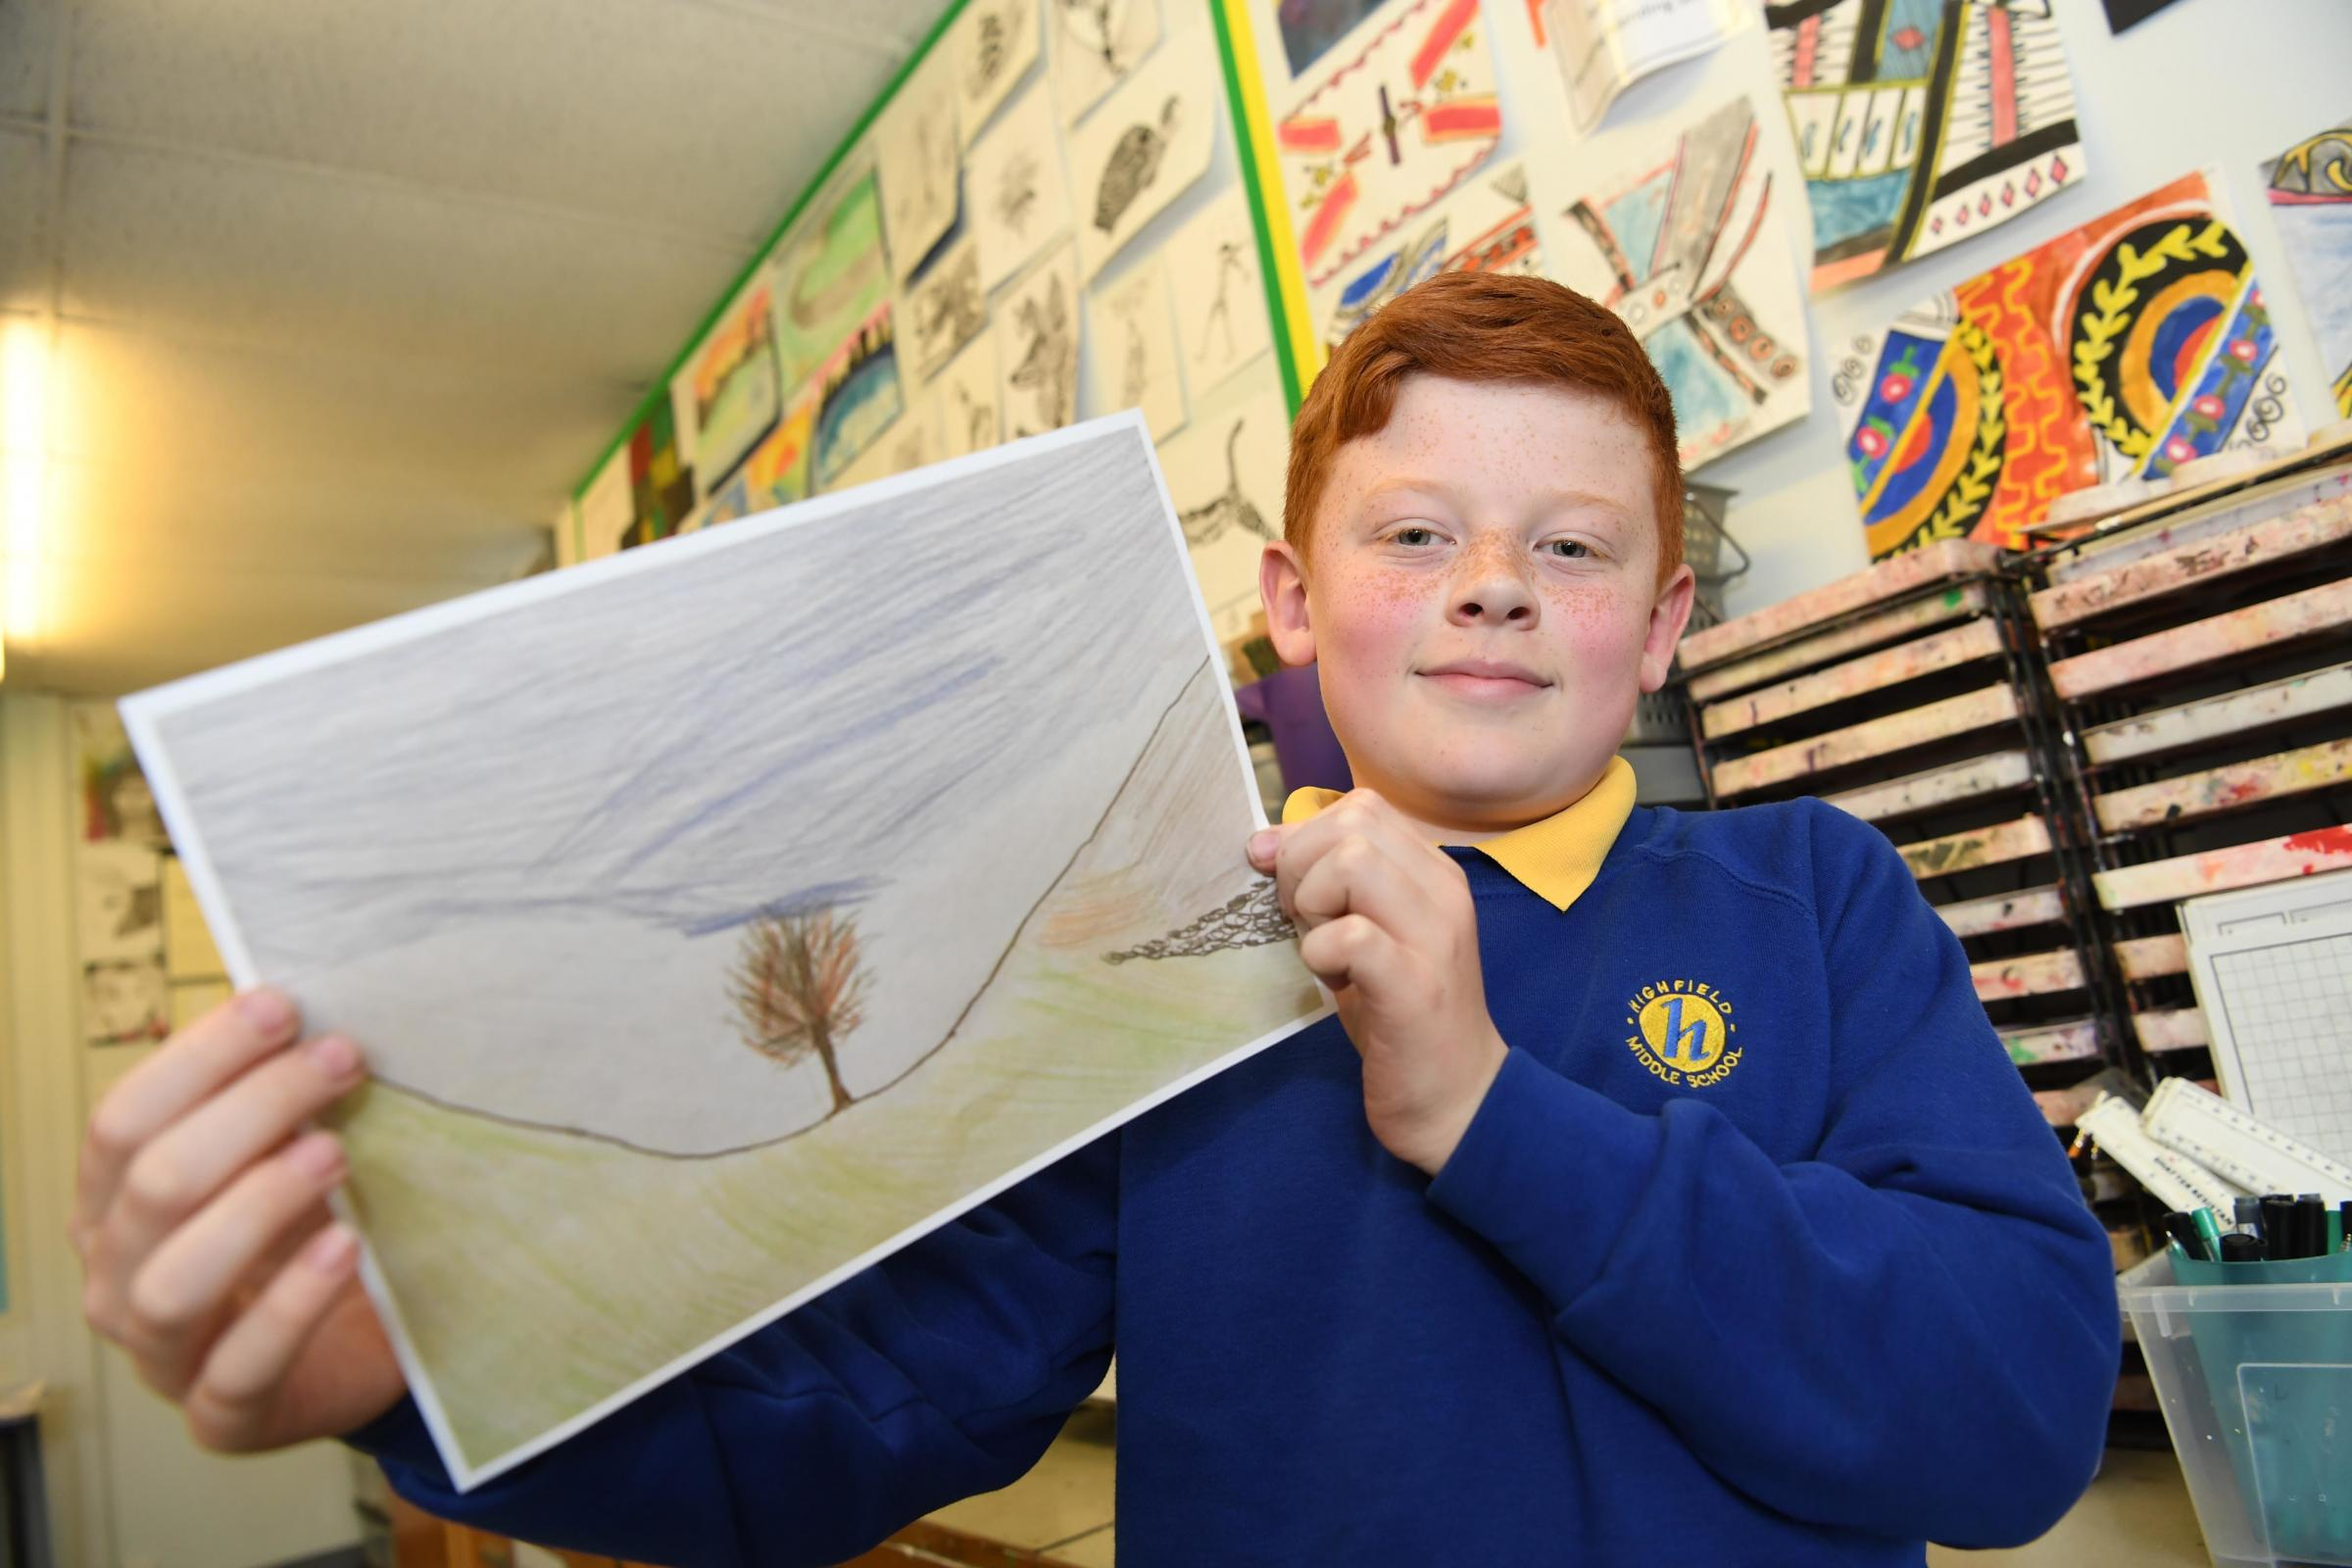 Oliver Stirk from Highfield Middle School in Prudhoe with his design for the Northumberland Day stamp. Photo: HX191949